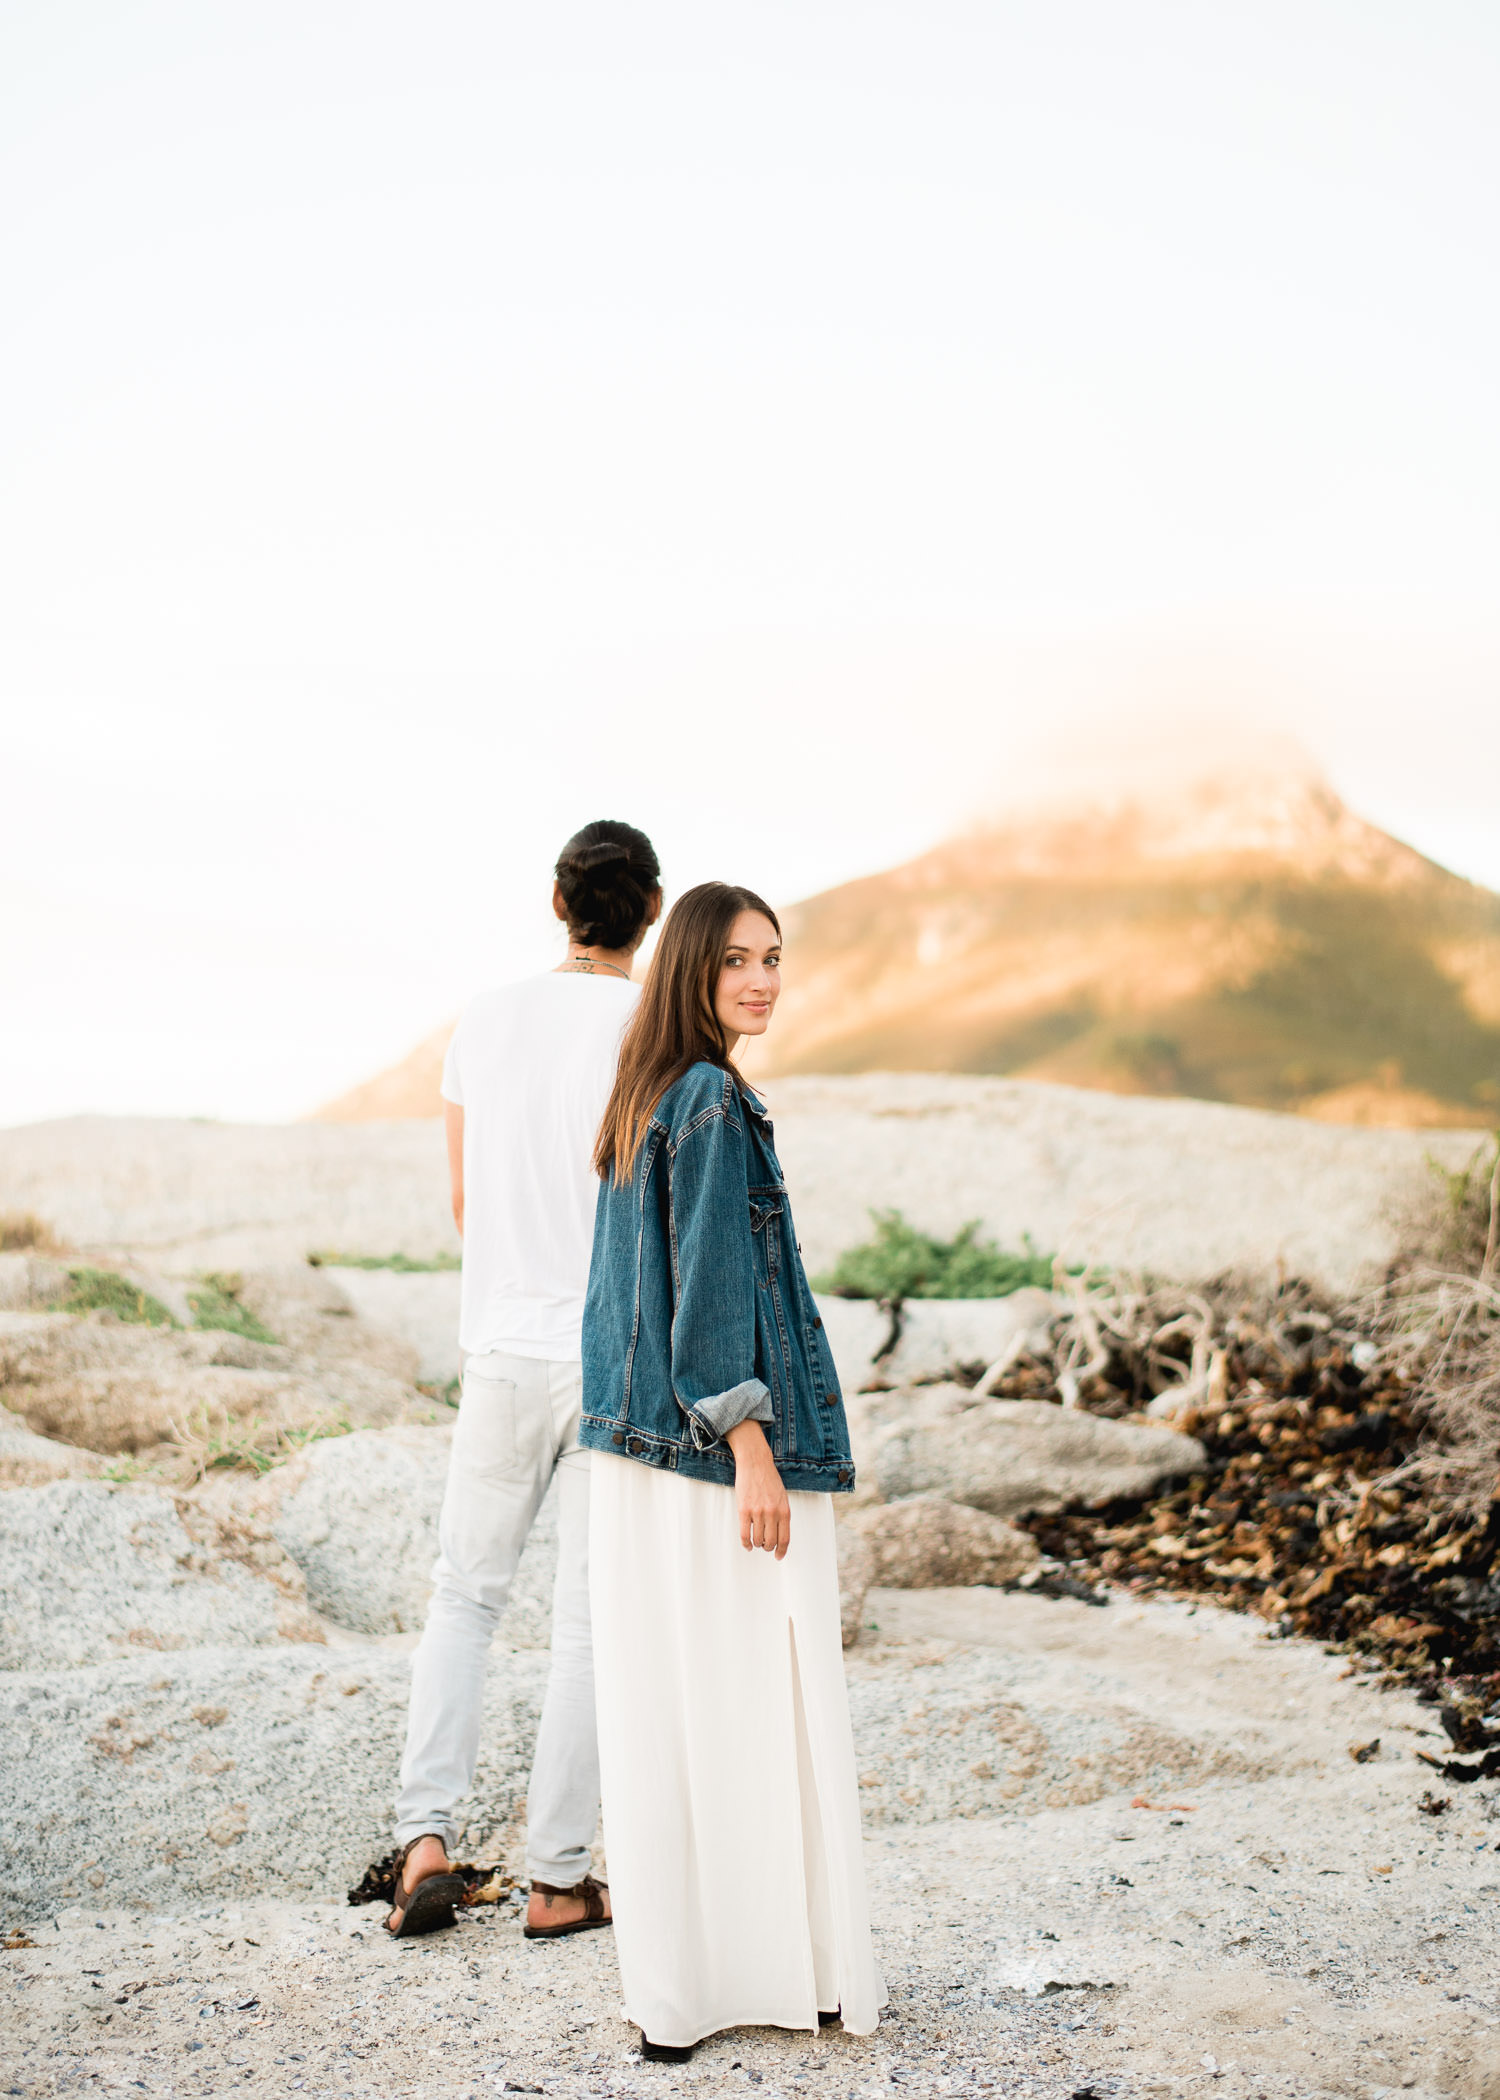 Romantic sunset beach session in Cape Town